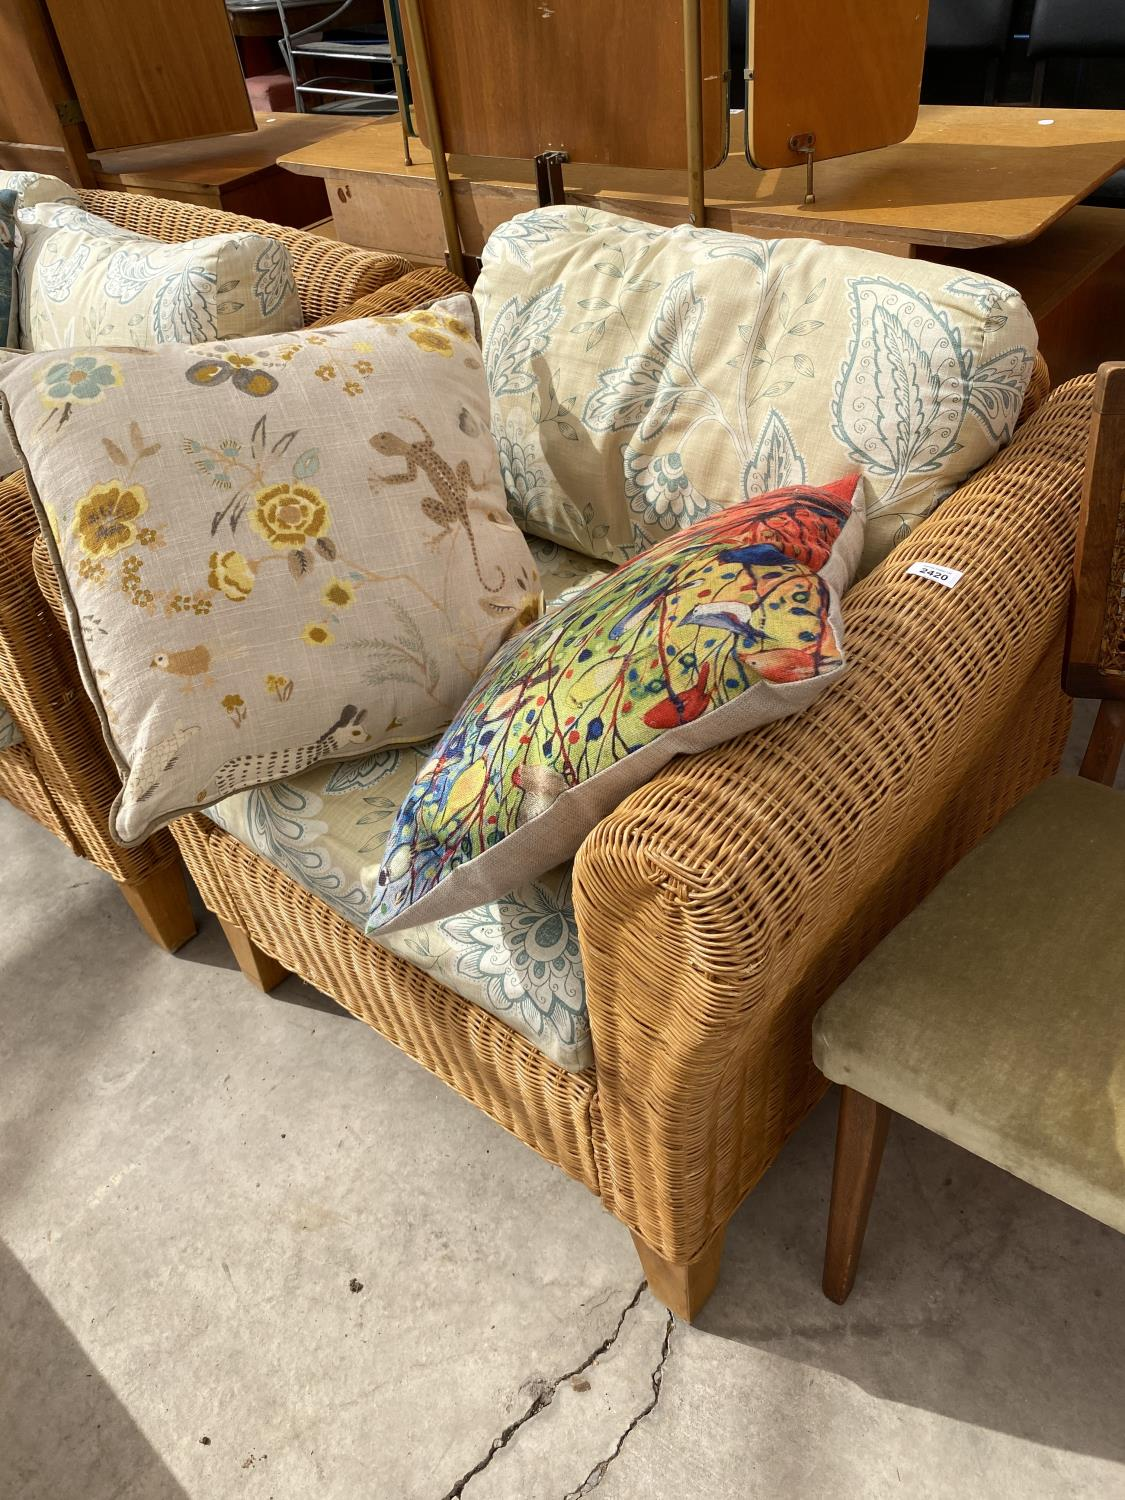 A MODERN WICKER CONSERVATORY SETTEE AND EASY CHAIR WITH FIVE LOOSE CUSHIONS - Image 2 of 4